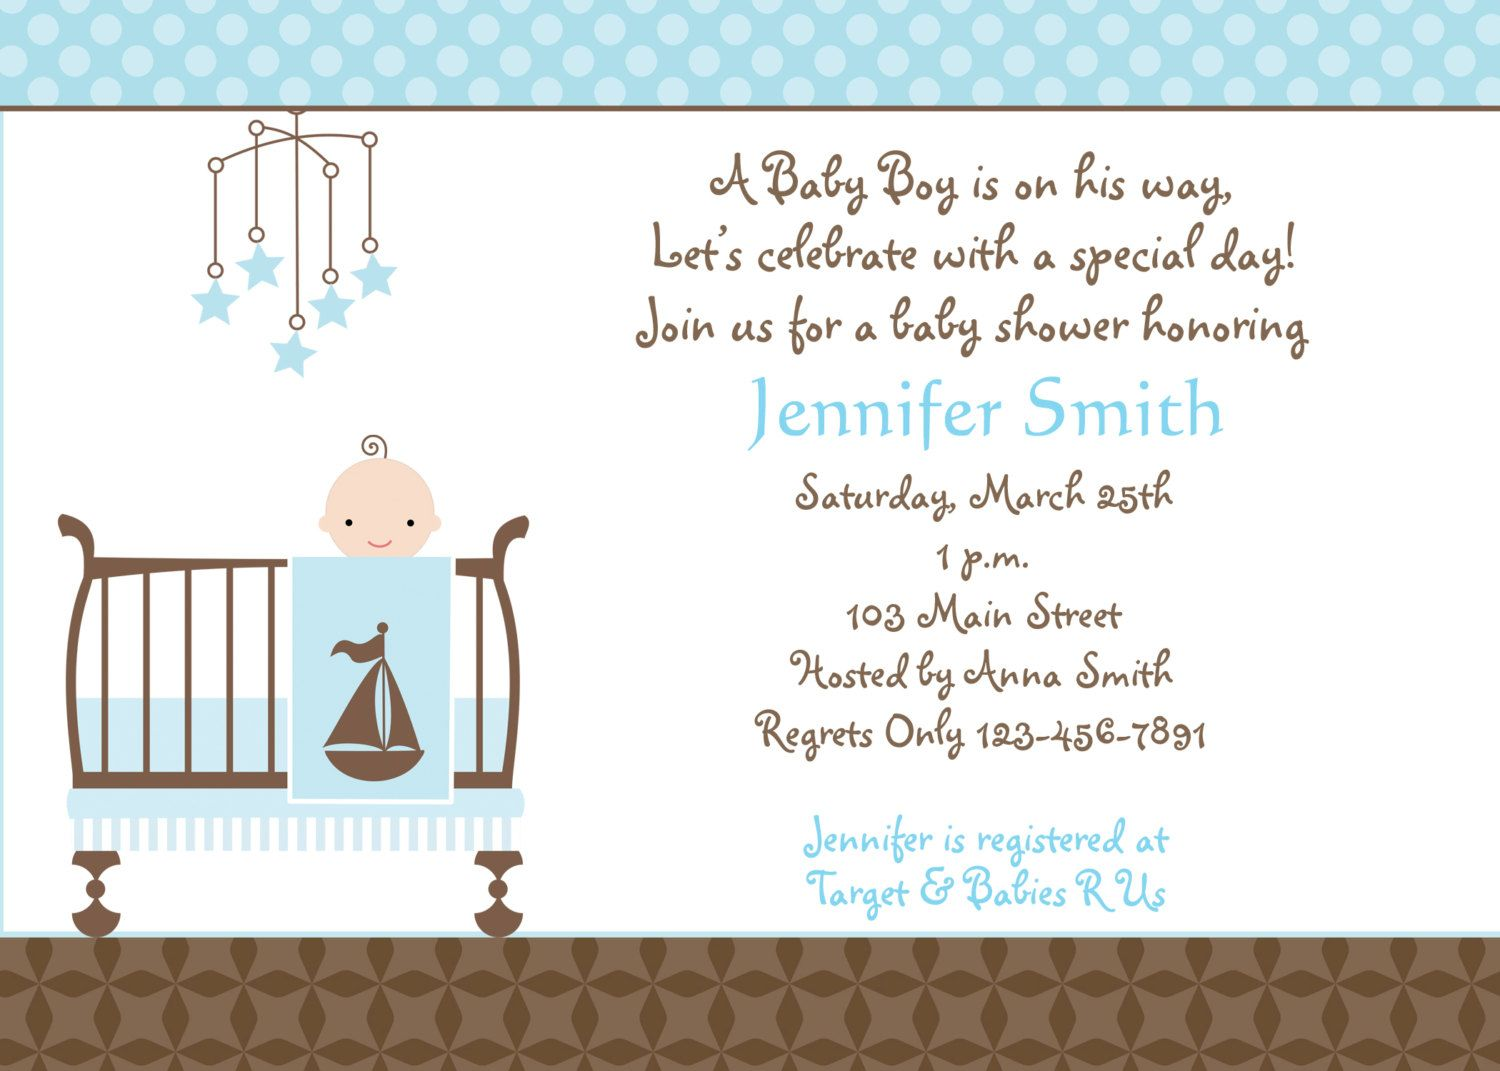 Baby Shower Invitation   Baby Boy Shower Invitation    You Print Or I Print  Baby Shower Invitations For Word Templates